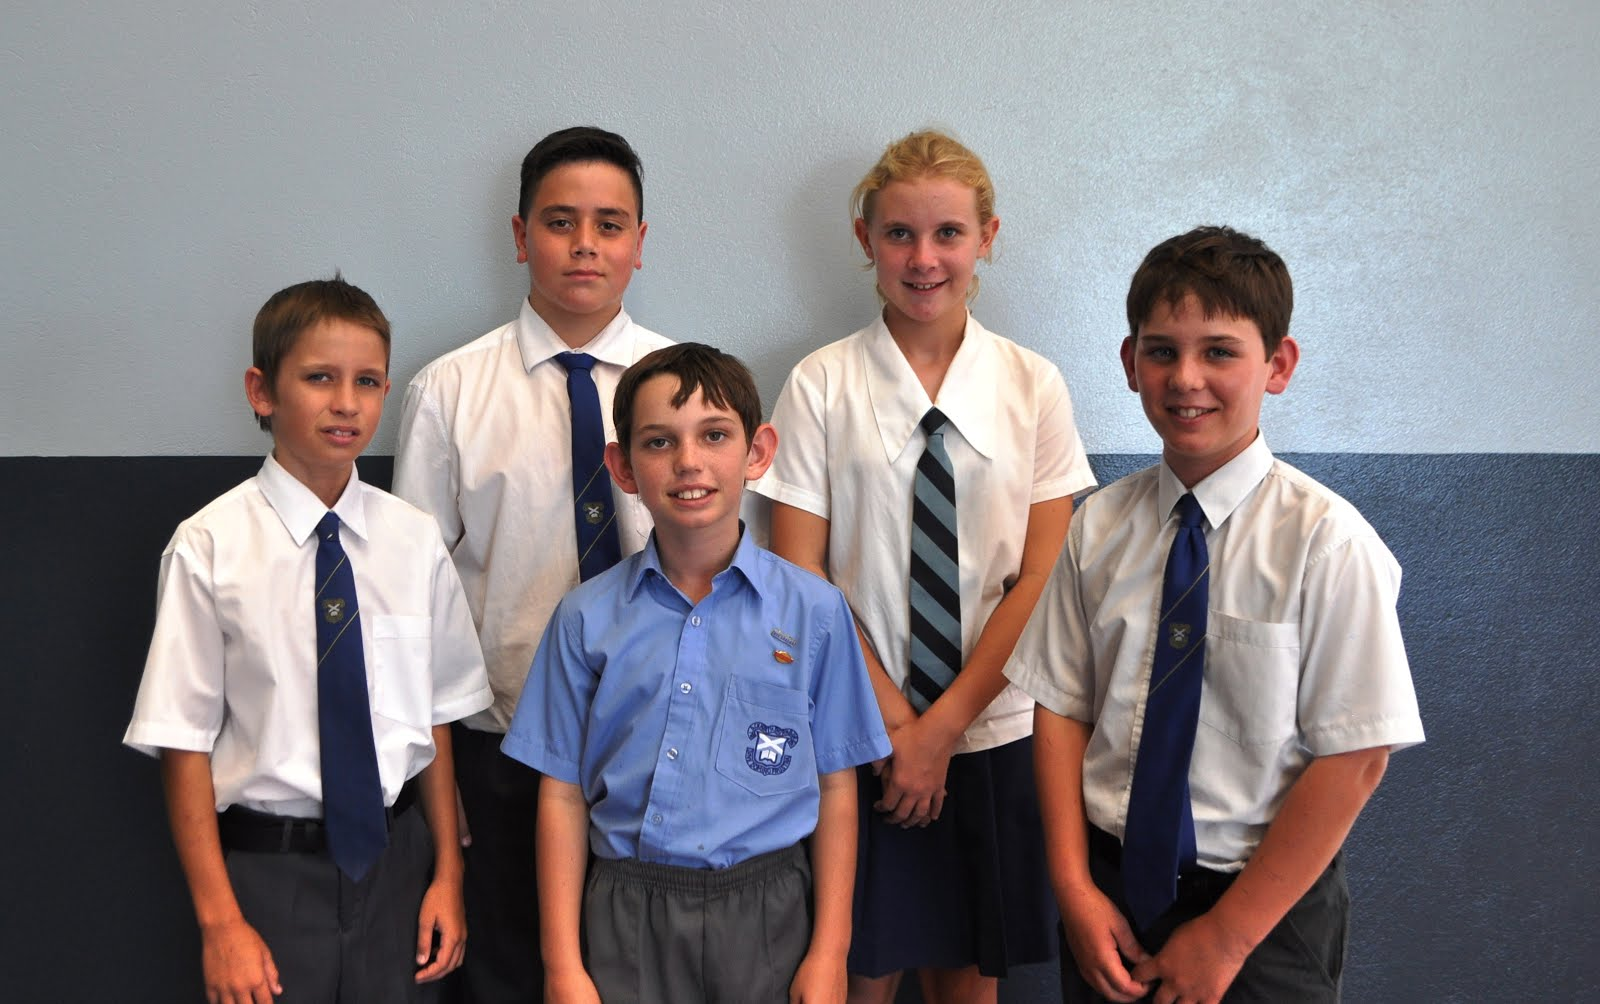 Congratulations Charters Towers Representatives